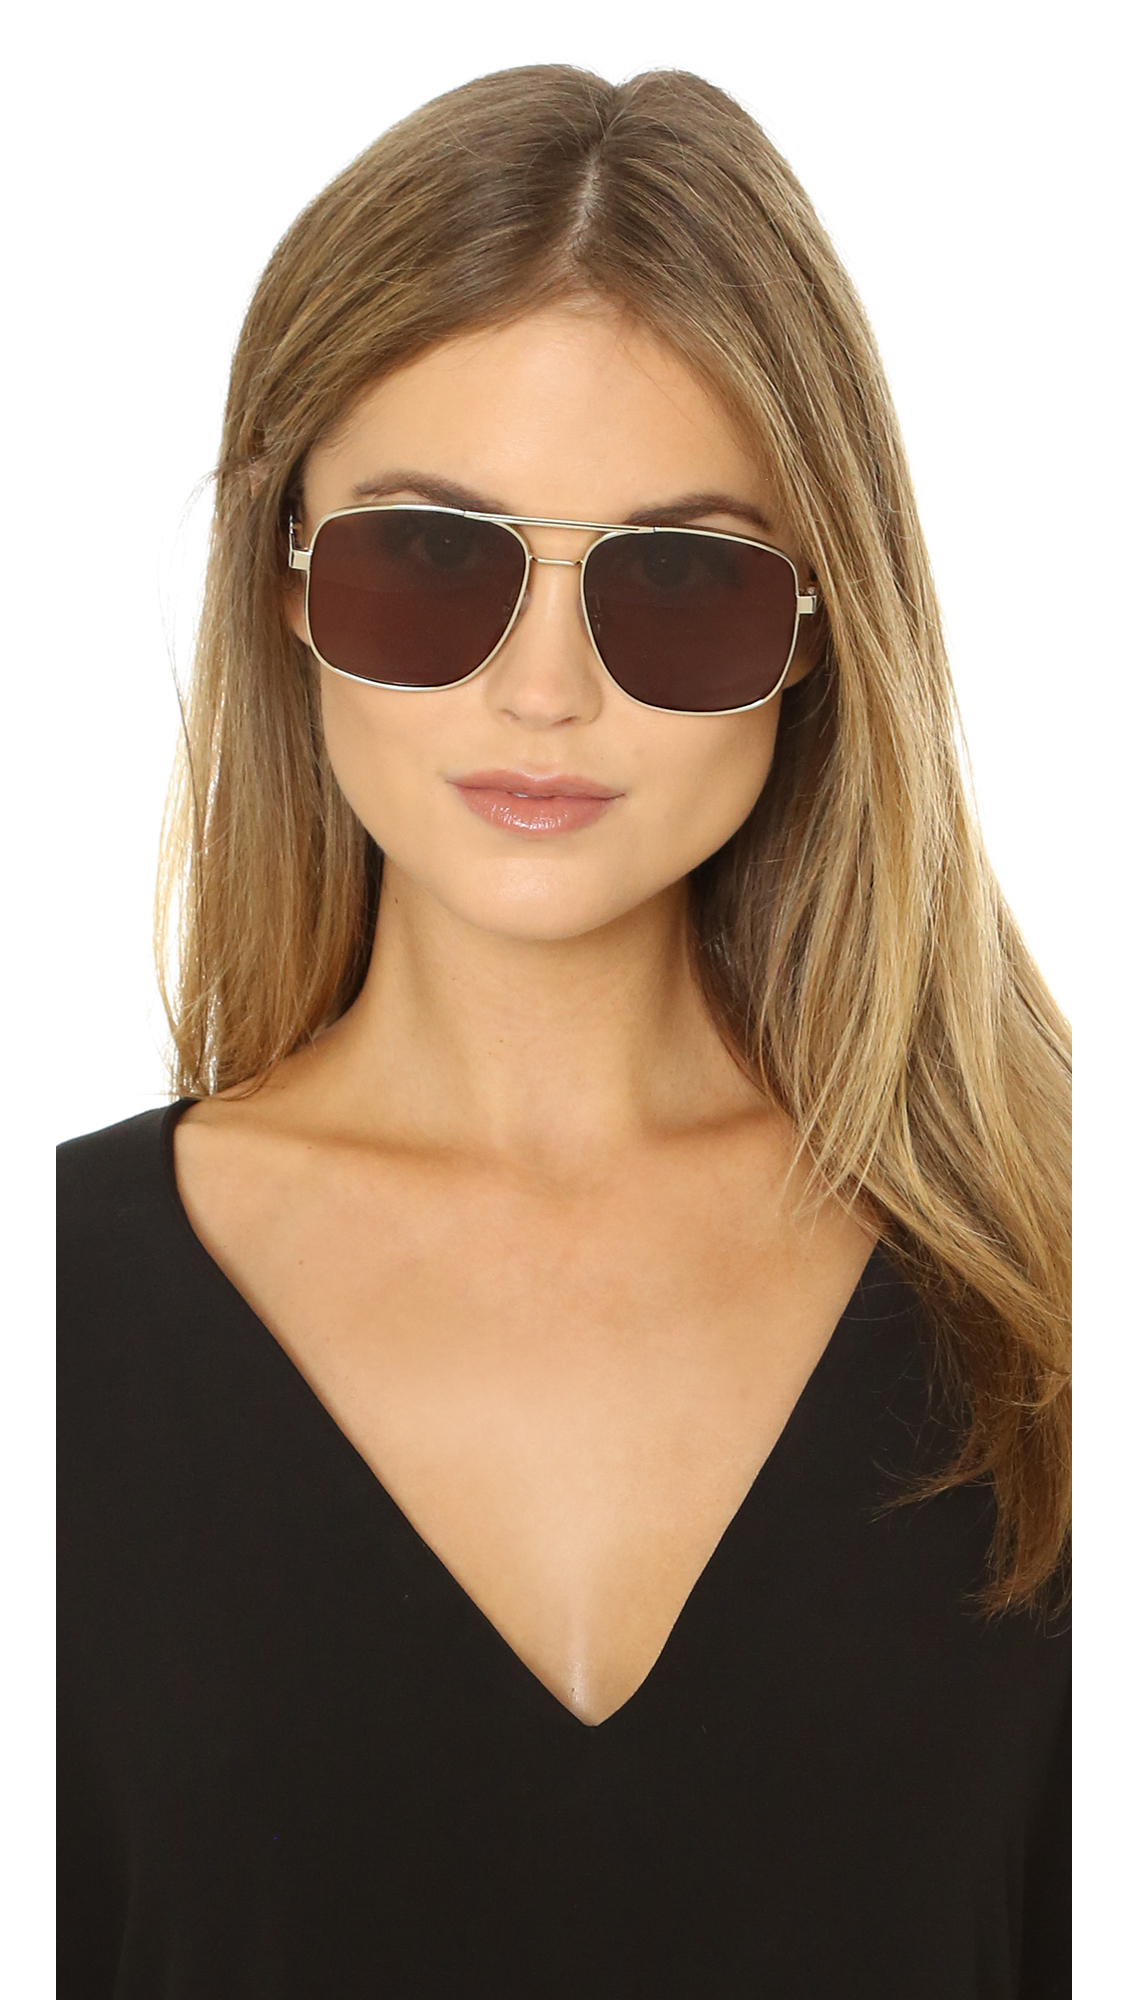 fde1b103faf Lyst - Pared Eyewear Uptown   Downtown Sunglasses in Metallic